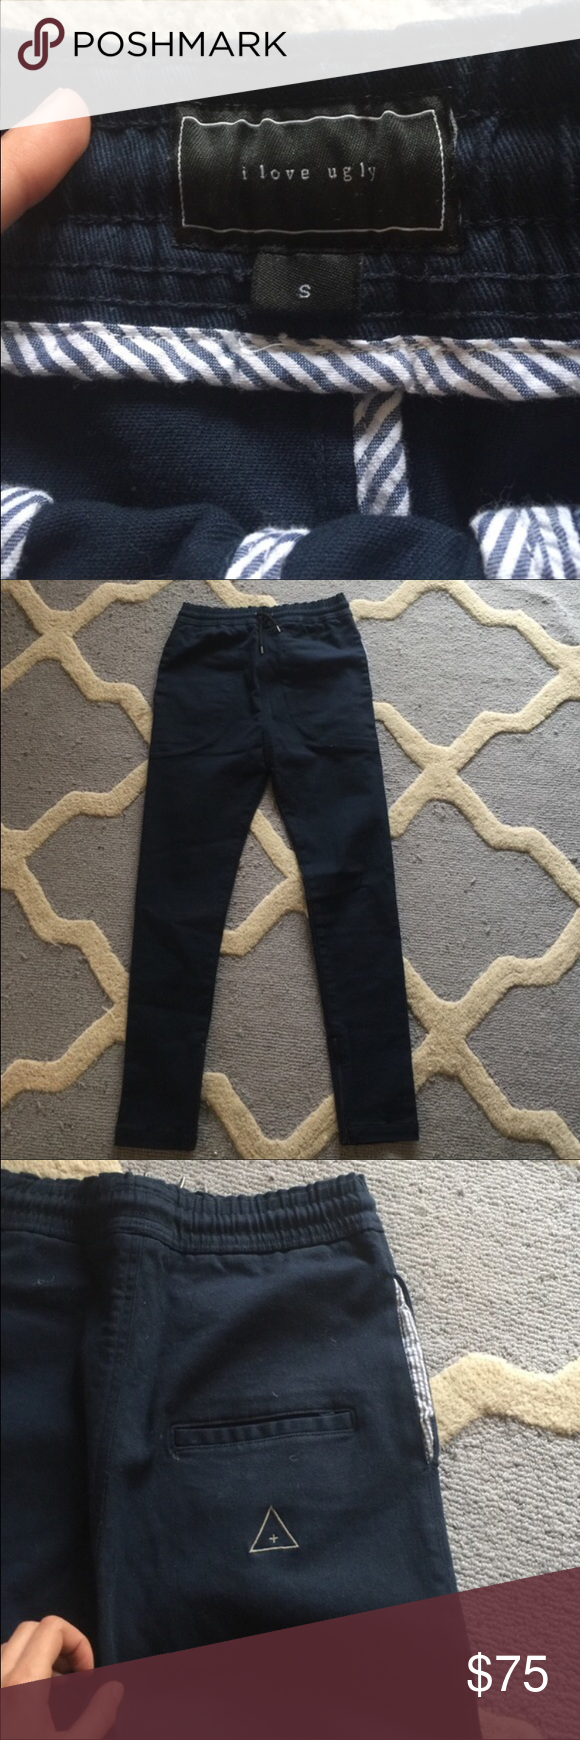 I love Ugly Zespy Drop crotch pants I love ugly (LA Brand) Navy Blue Drop Crotch* Draw string* Ankle Zipper* Seer Sucker Pockets* skinny/slim fit. Literally worn once. Mint/brand new  condition. Size small. About a 29-32 in the waist. Will ship within 1 business day. I Love Ugly Pants Chinos & Khakis